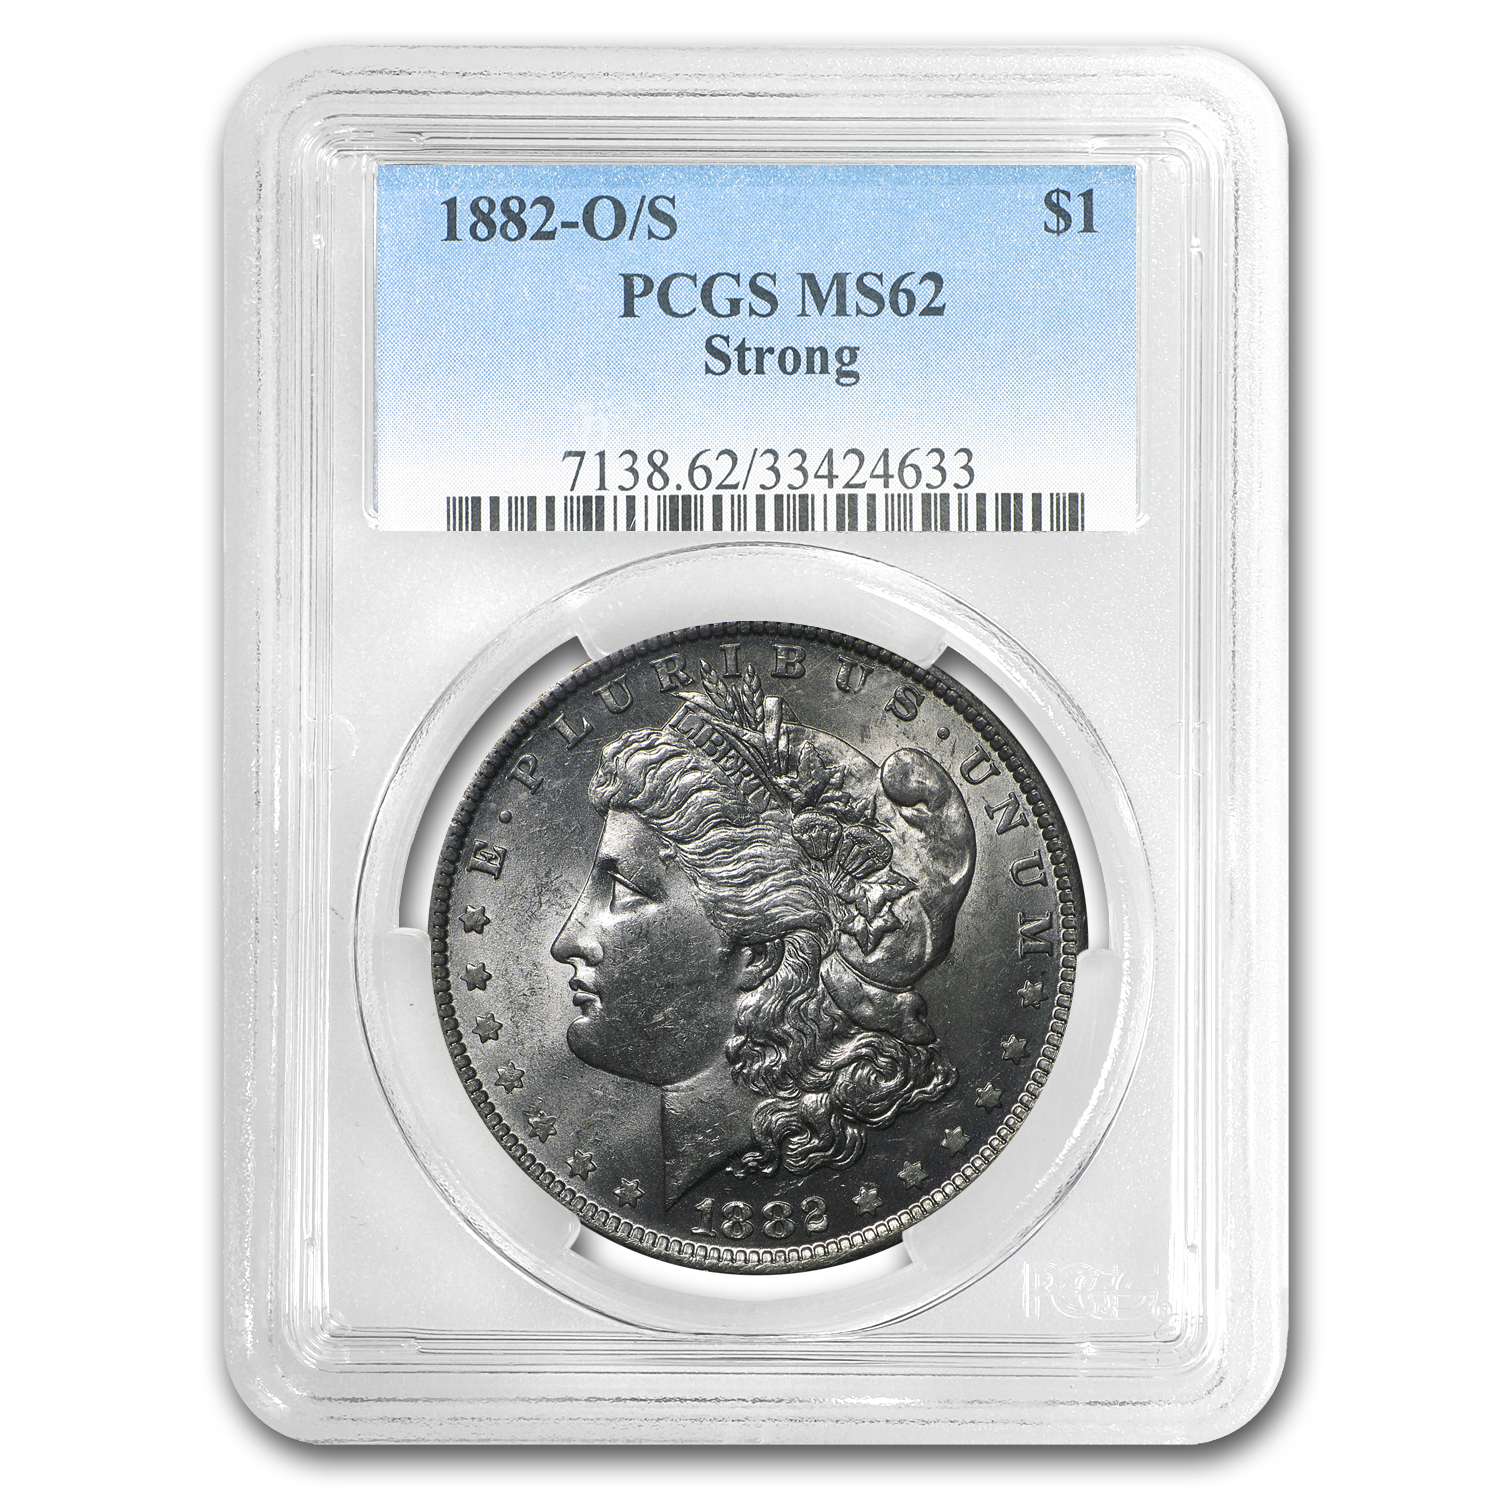 1882-O/S Morgan Dollar MS-62 PCGS (Strong)